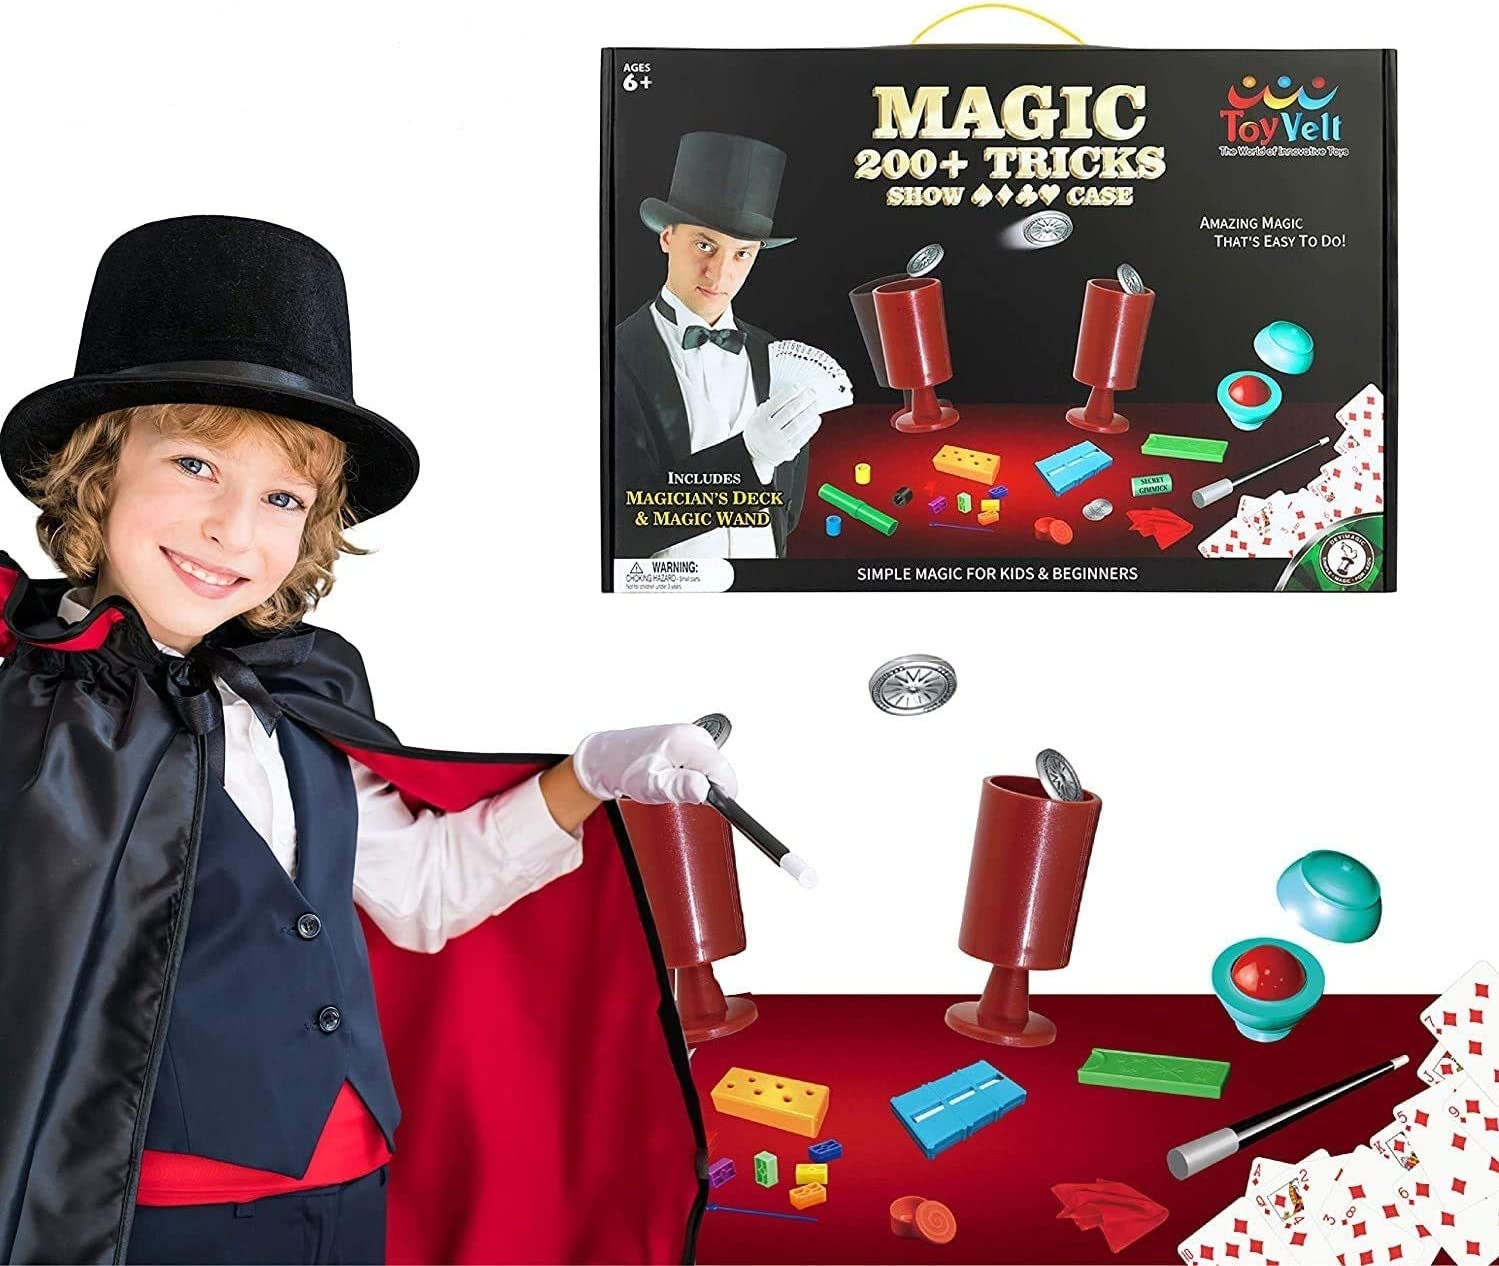 ToyVelt Magic Tricks Magic Set - Kids Magic Kit for Beginners with Over 200 Tricks and Instructions - Hours of Fun and Learning - for Boys and Girls Ages 5, 6,7 and Up: Toys & Games